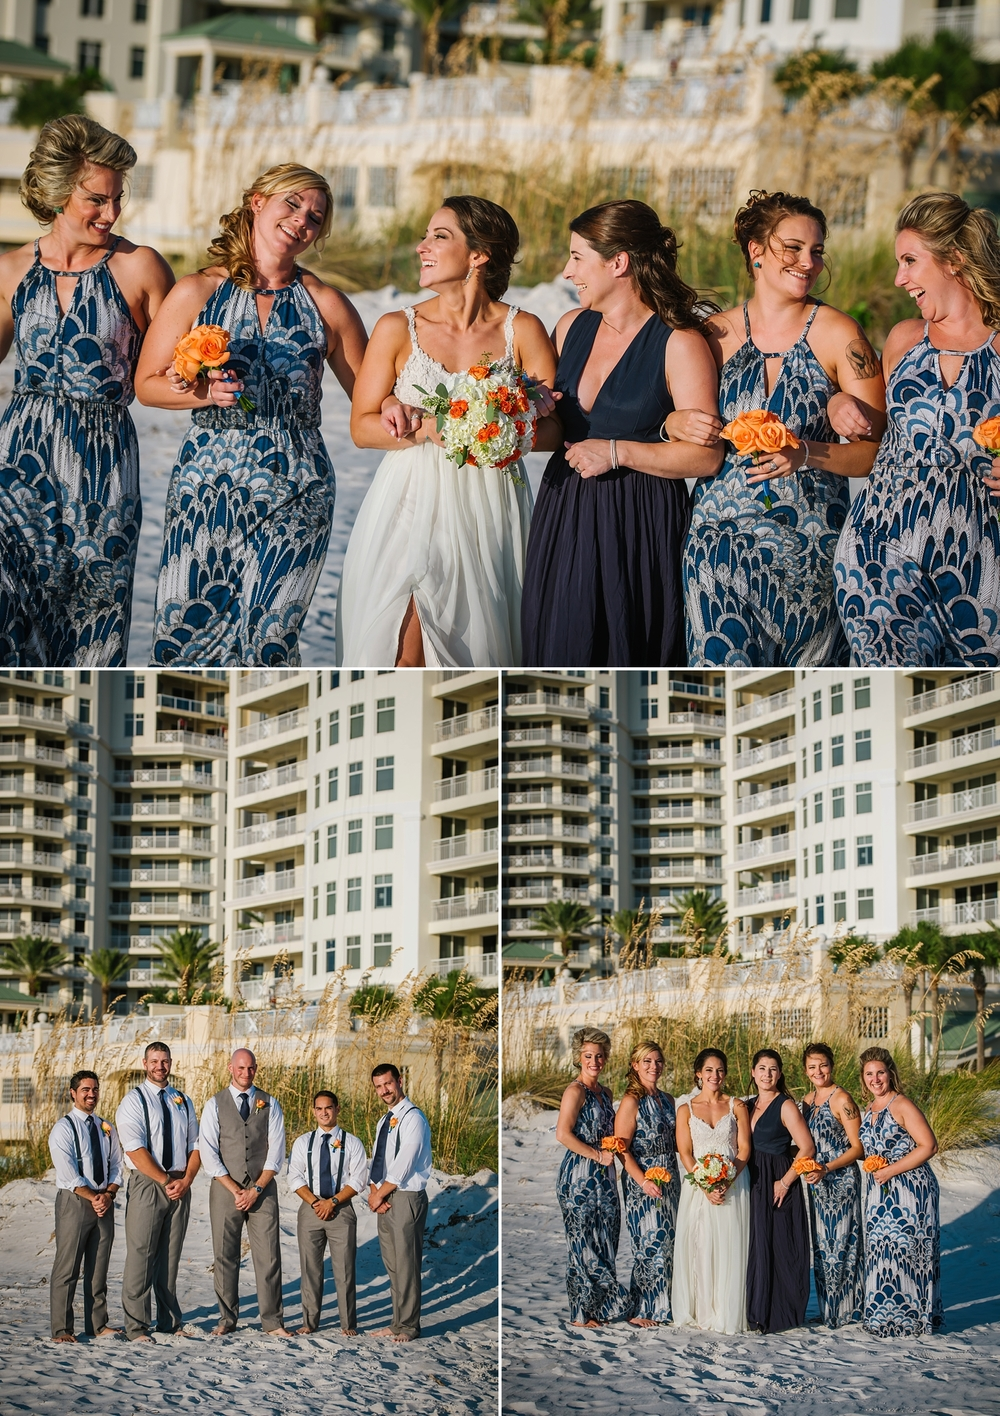 clearwater-beach-wedding-photography-ashlee-hamon_0024.jpg